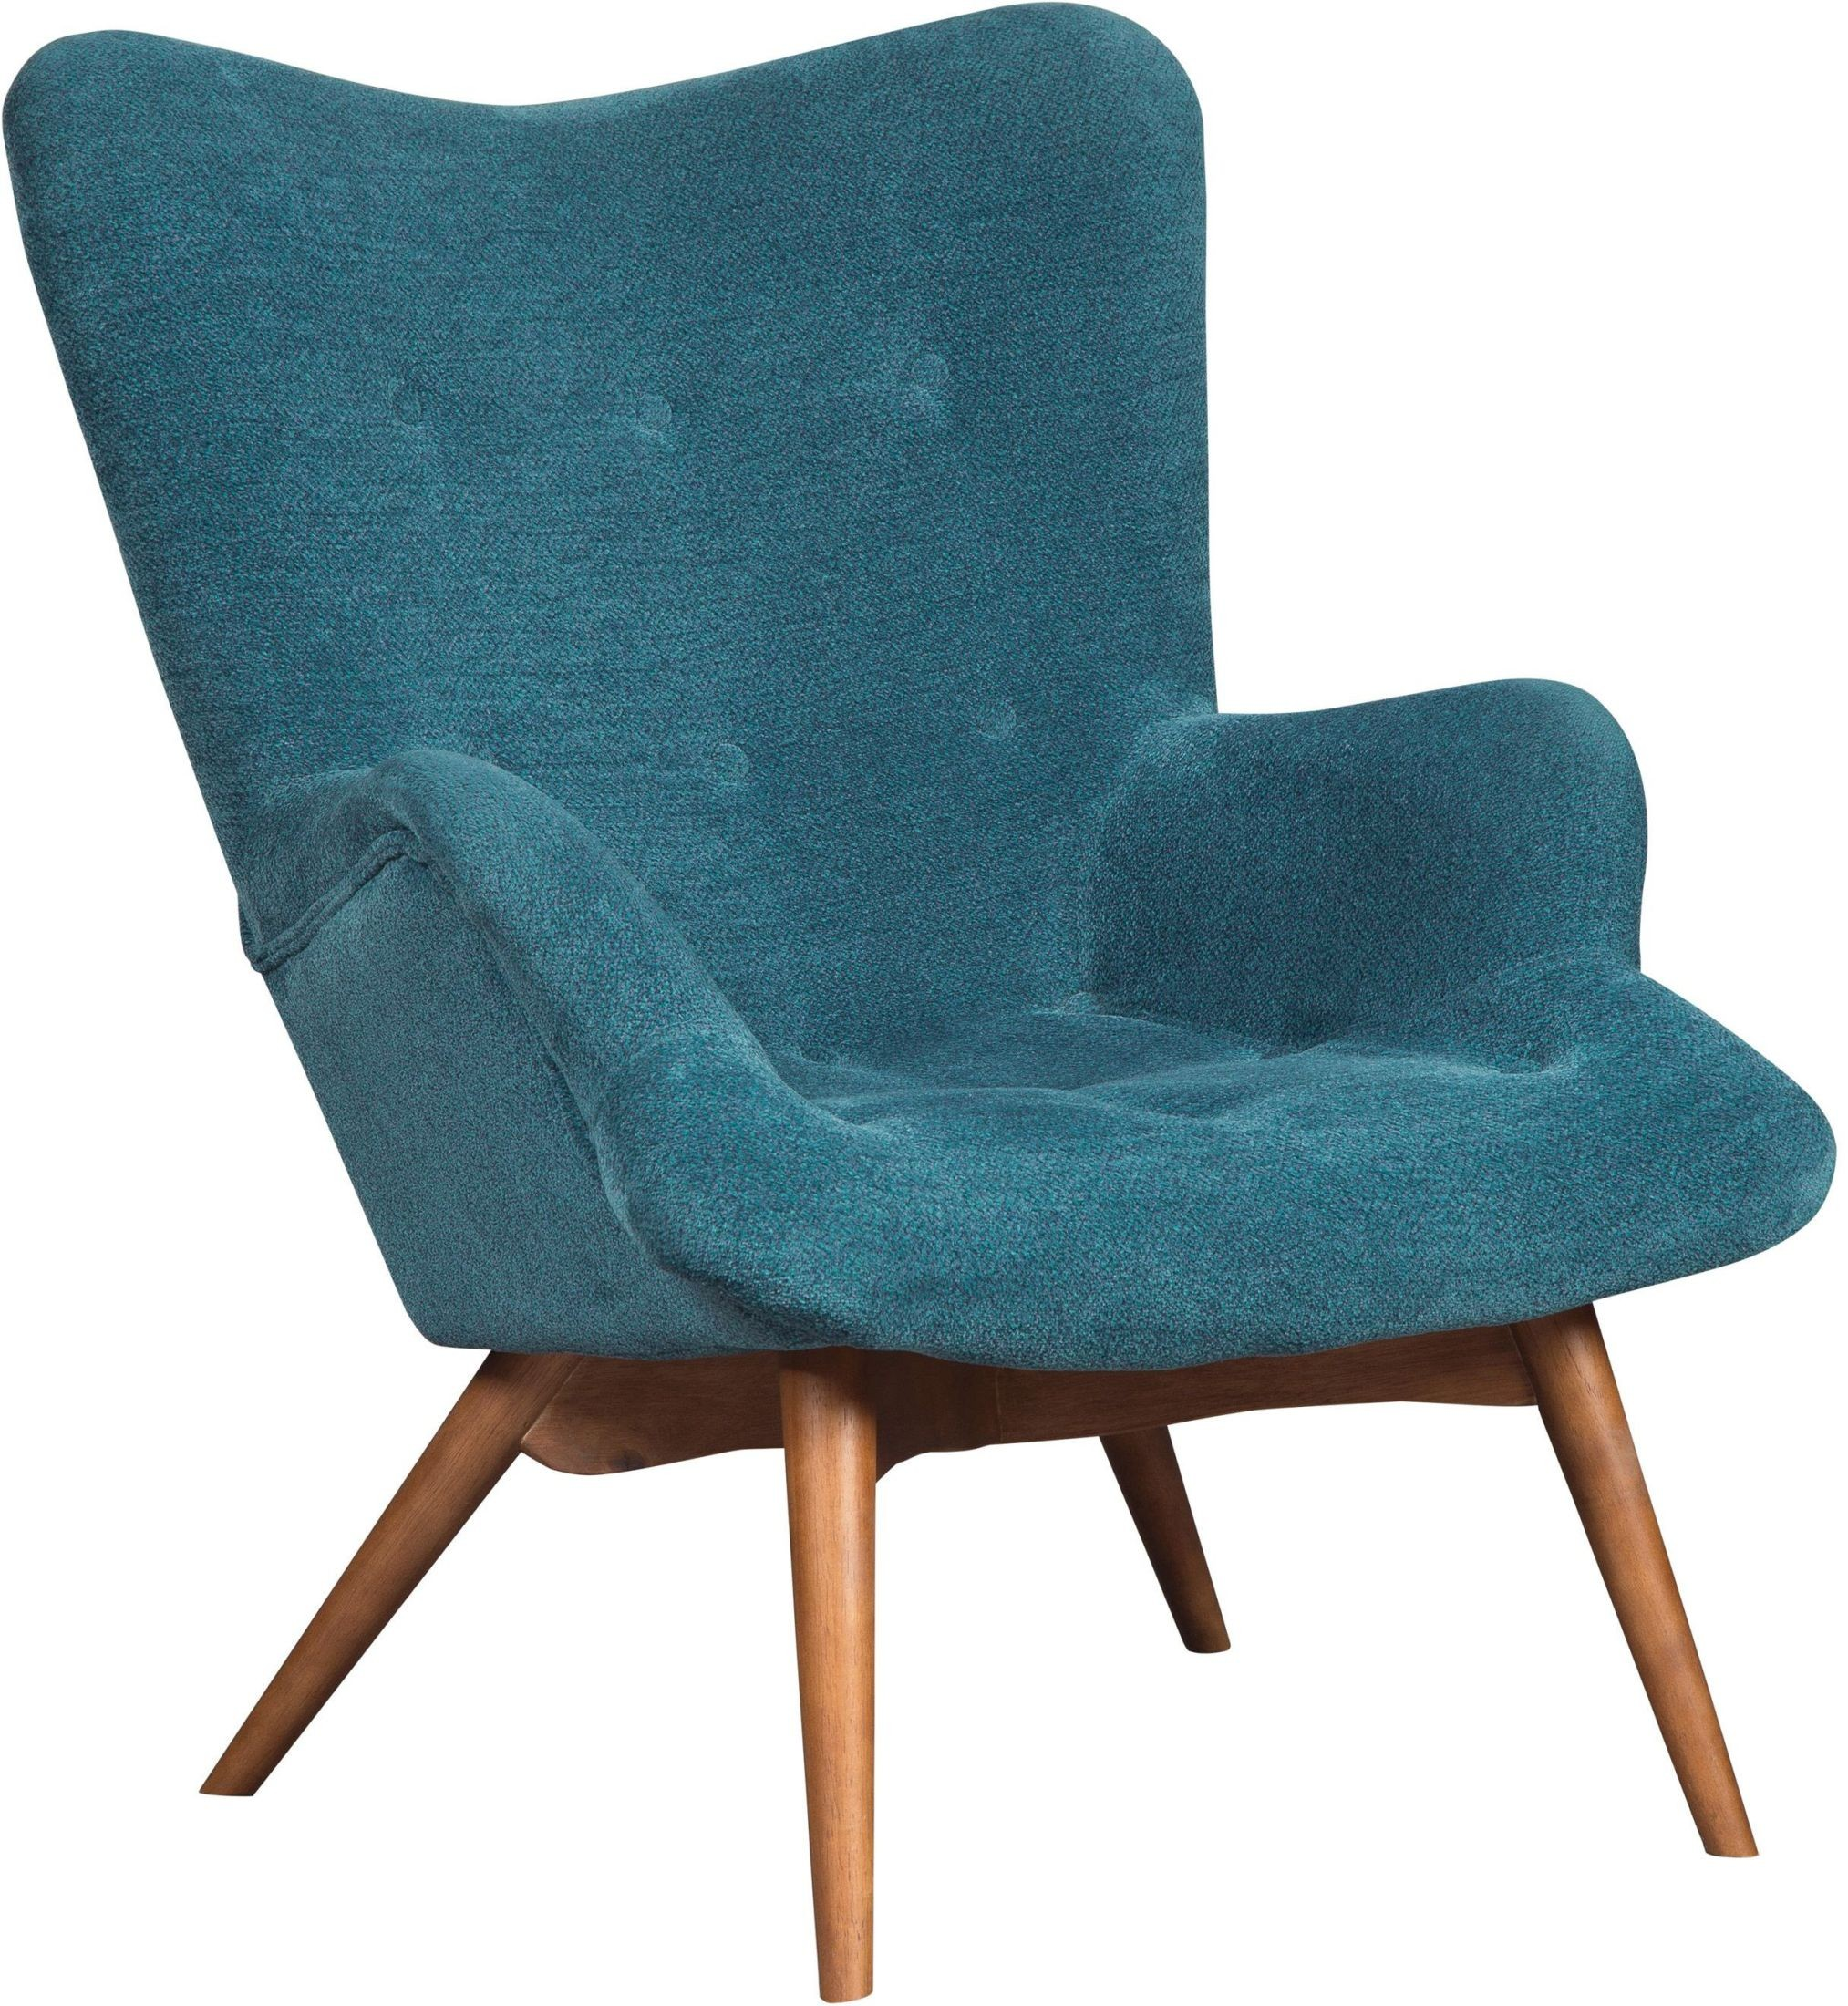 Turquoise Side Chair Pelsor Turquoise Accent Chair From Ashley Coleman Furniture